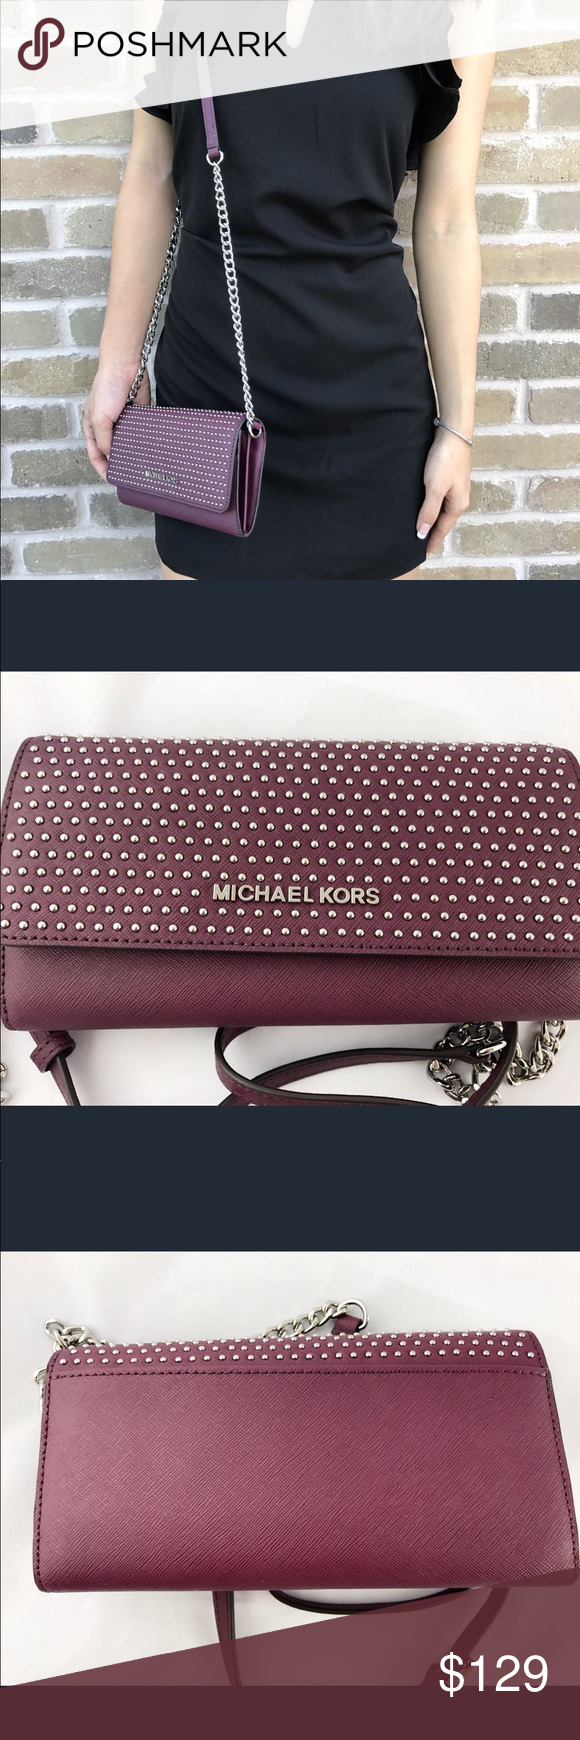 347bfff5e504 NWT Michael Kors Wallet on Chain Crossbody Plum Michael Kors Micro Studded  Wallet on Chain Crossbody